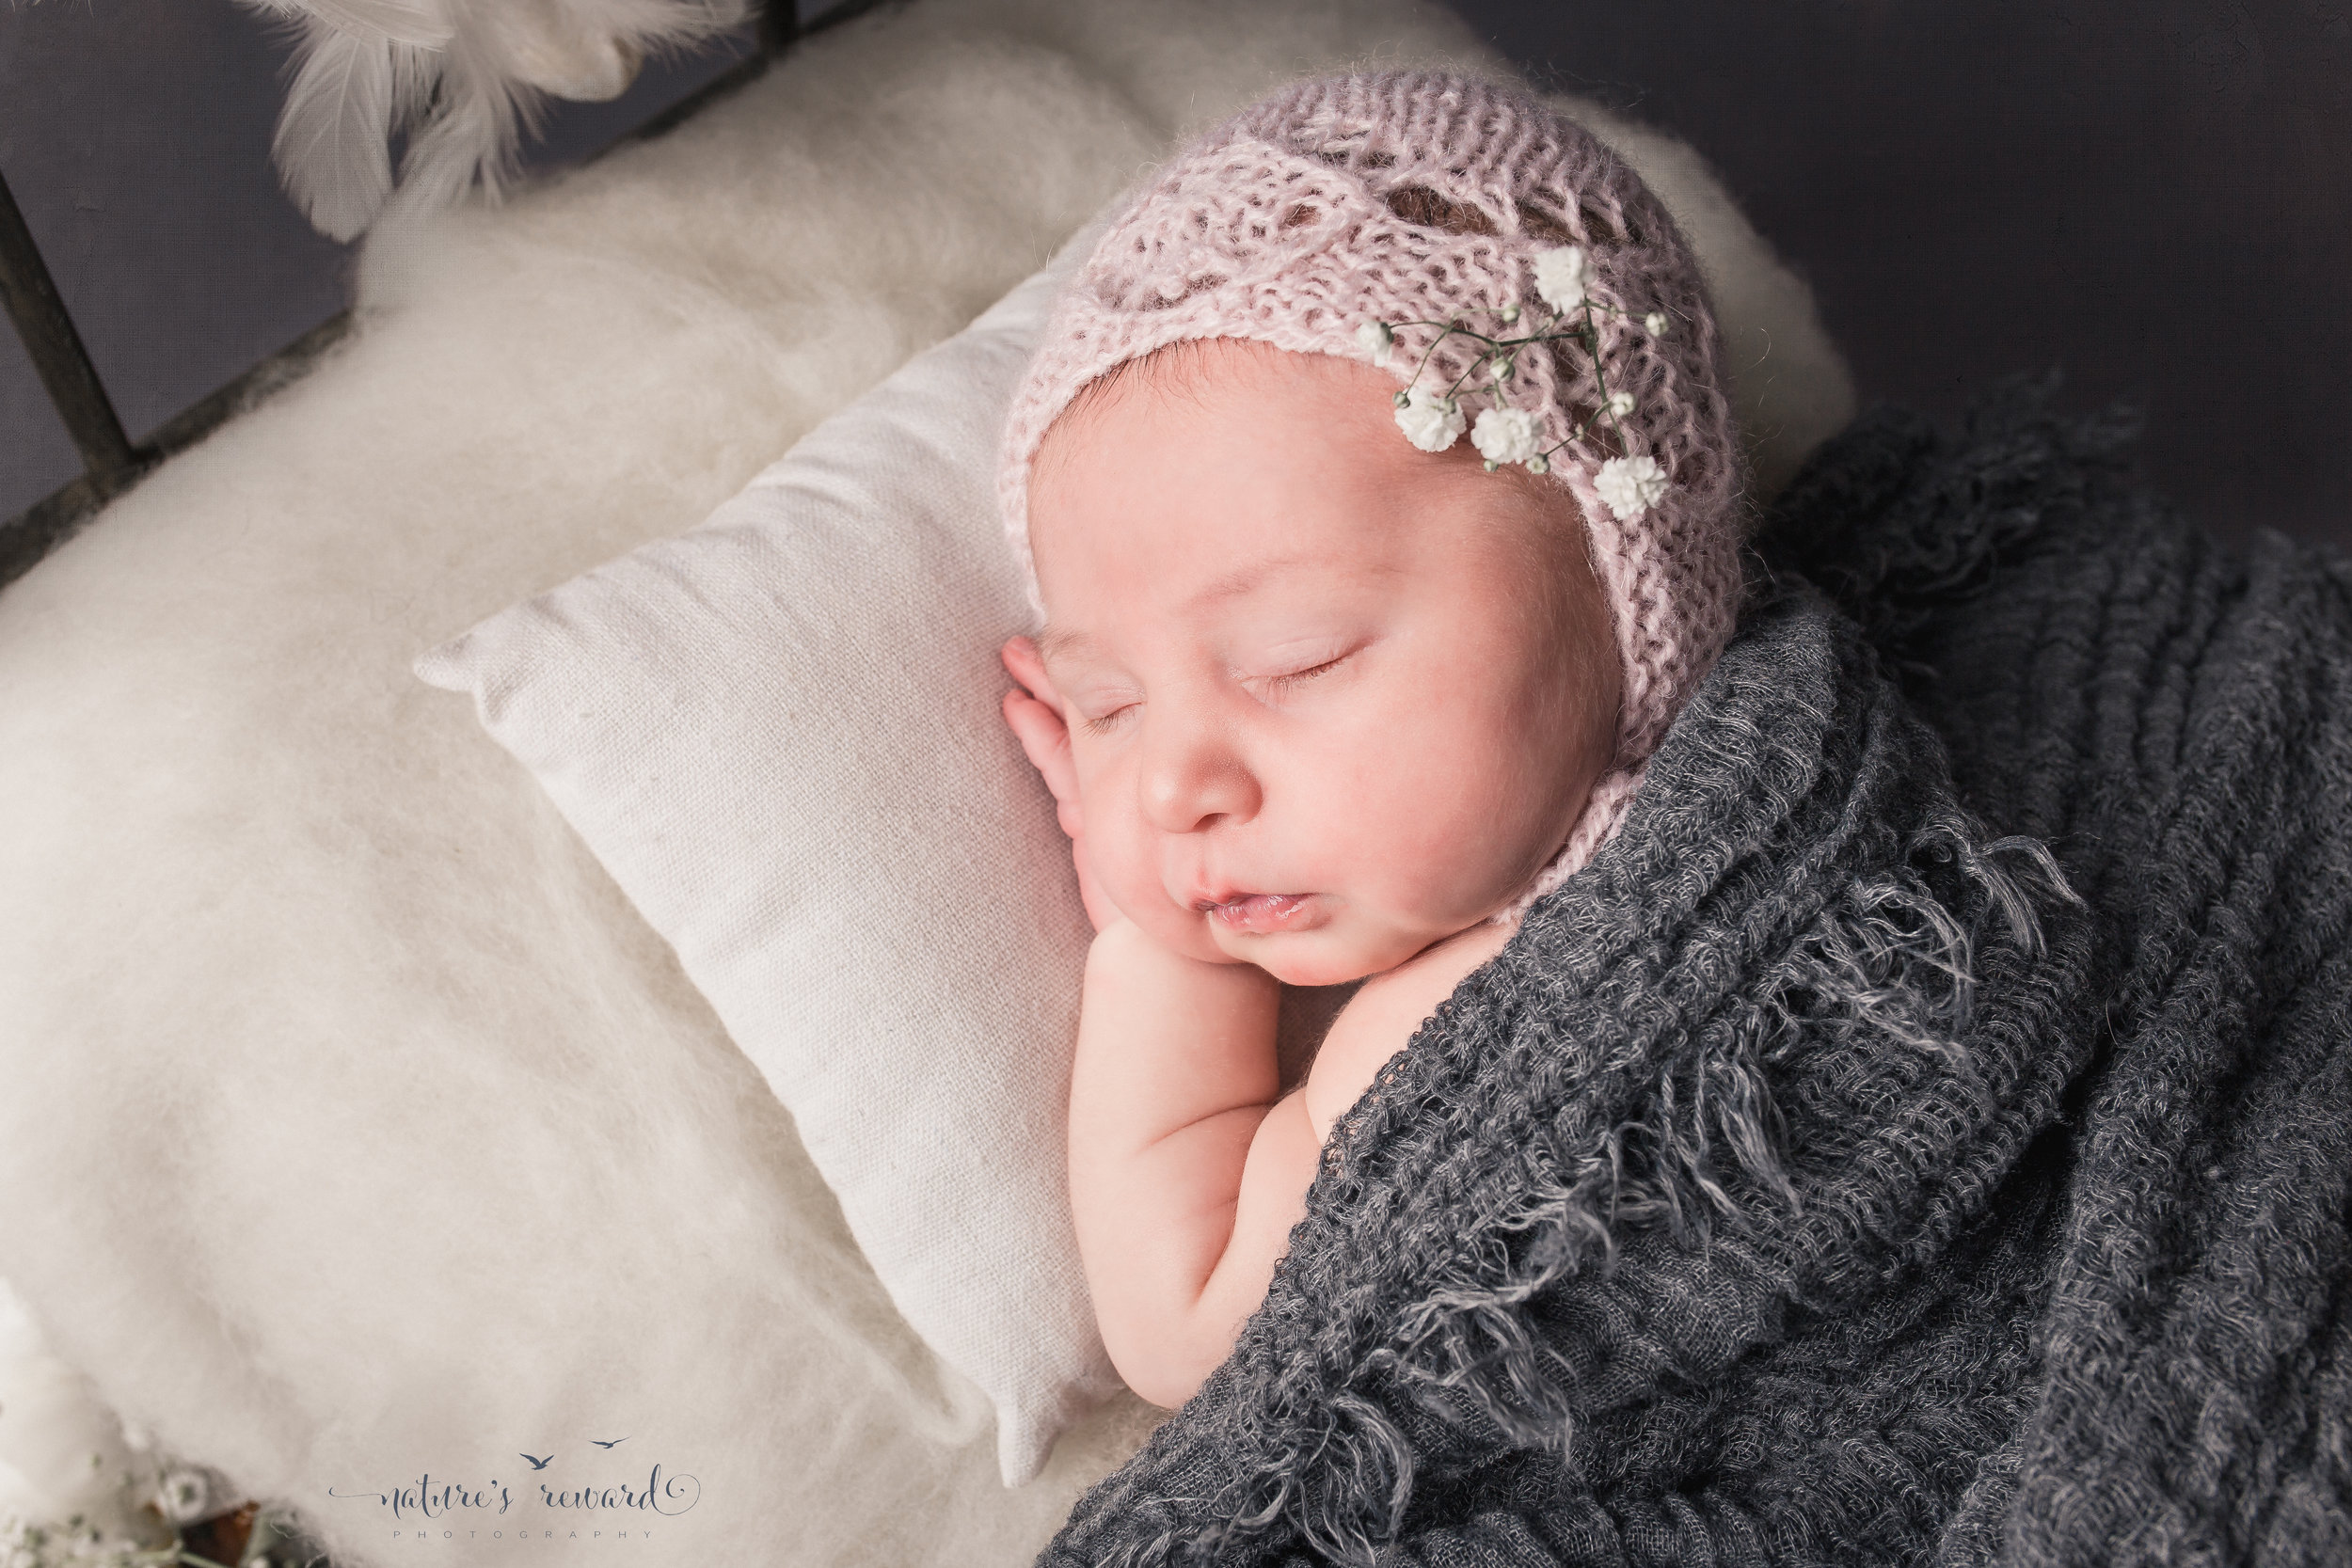 Newborn baby portrait in greys, whites and soft pink, laying on a doll bed.A Portrait By Nature's Reward Photography, a San Bernardino Family, Child, and Newborn Baby Photographer.